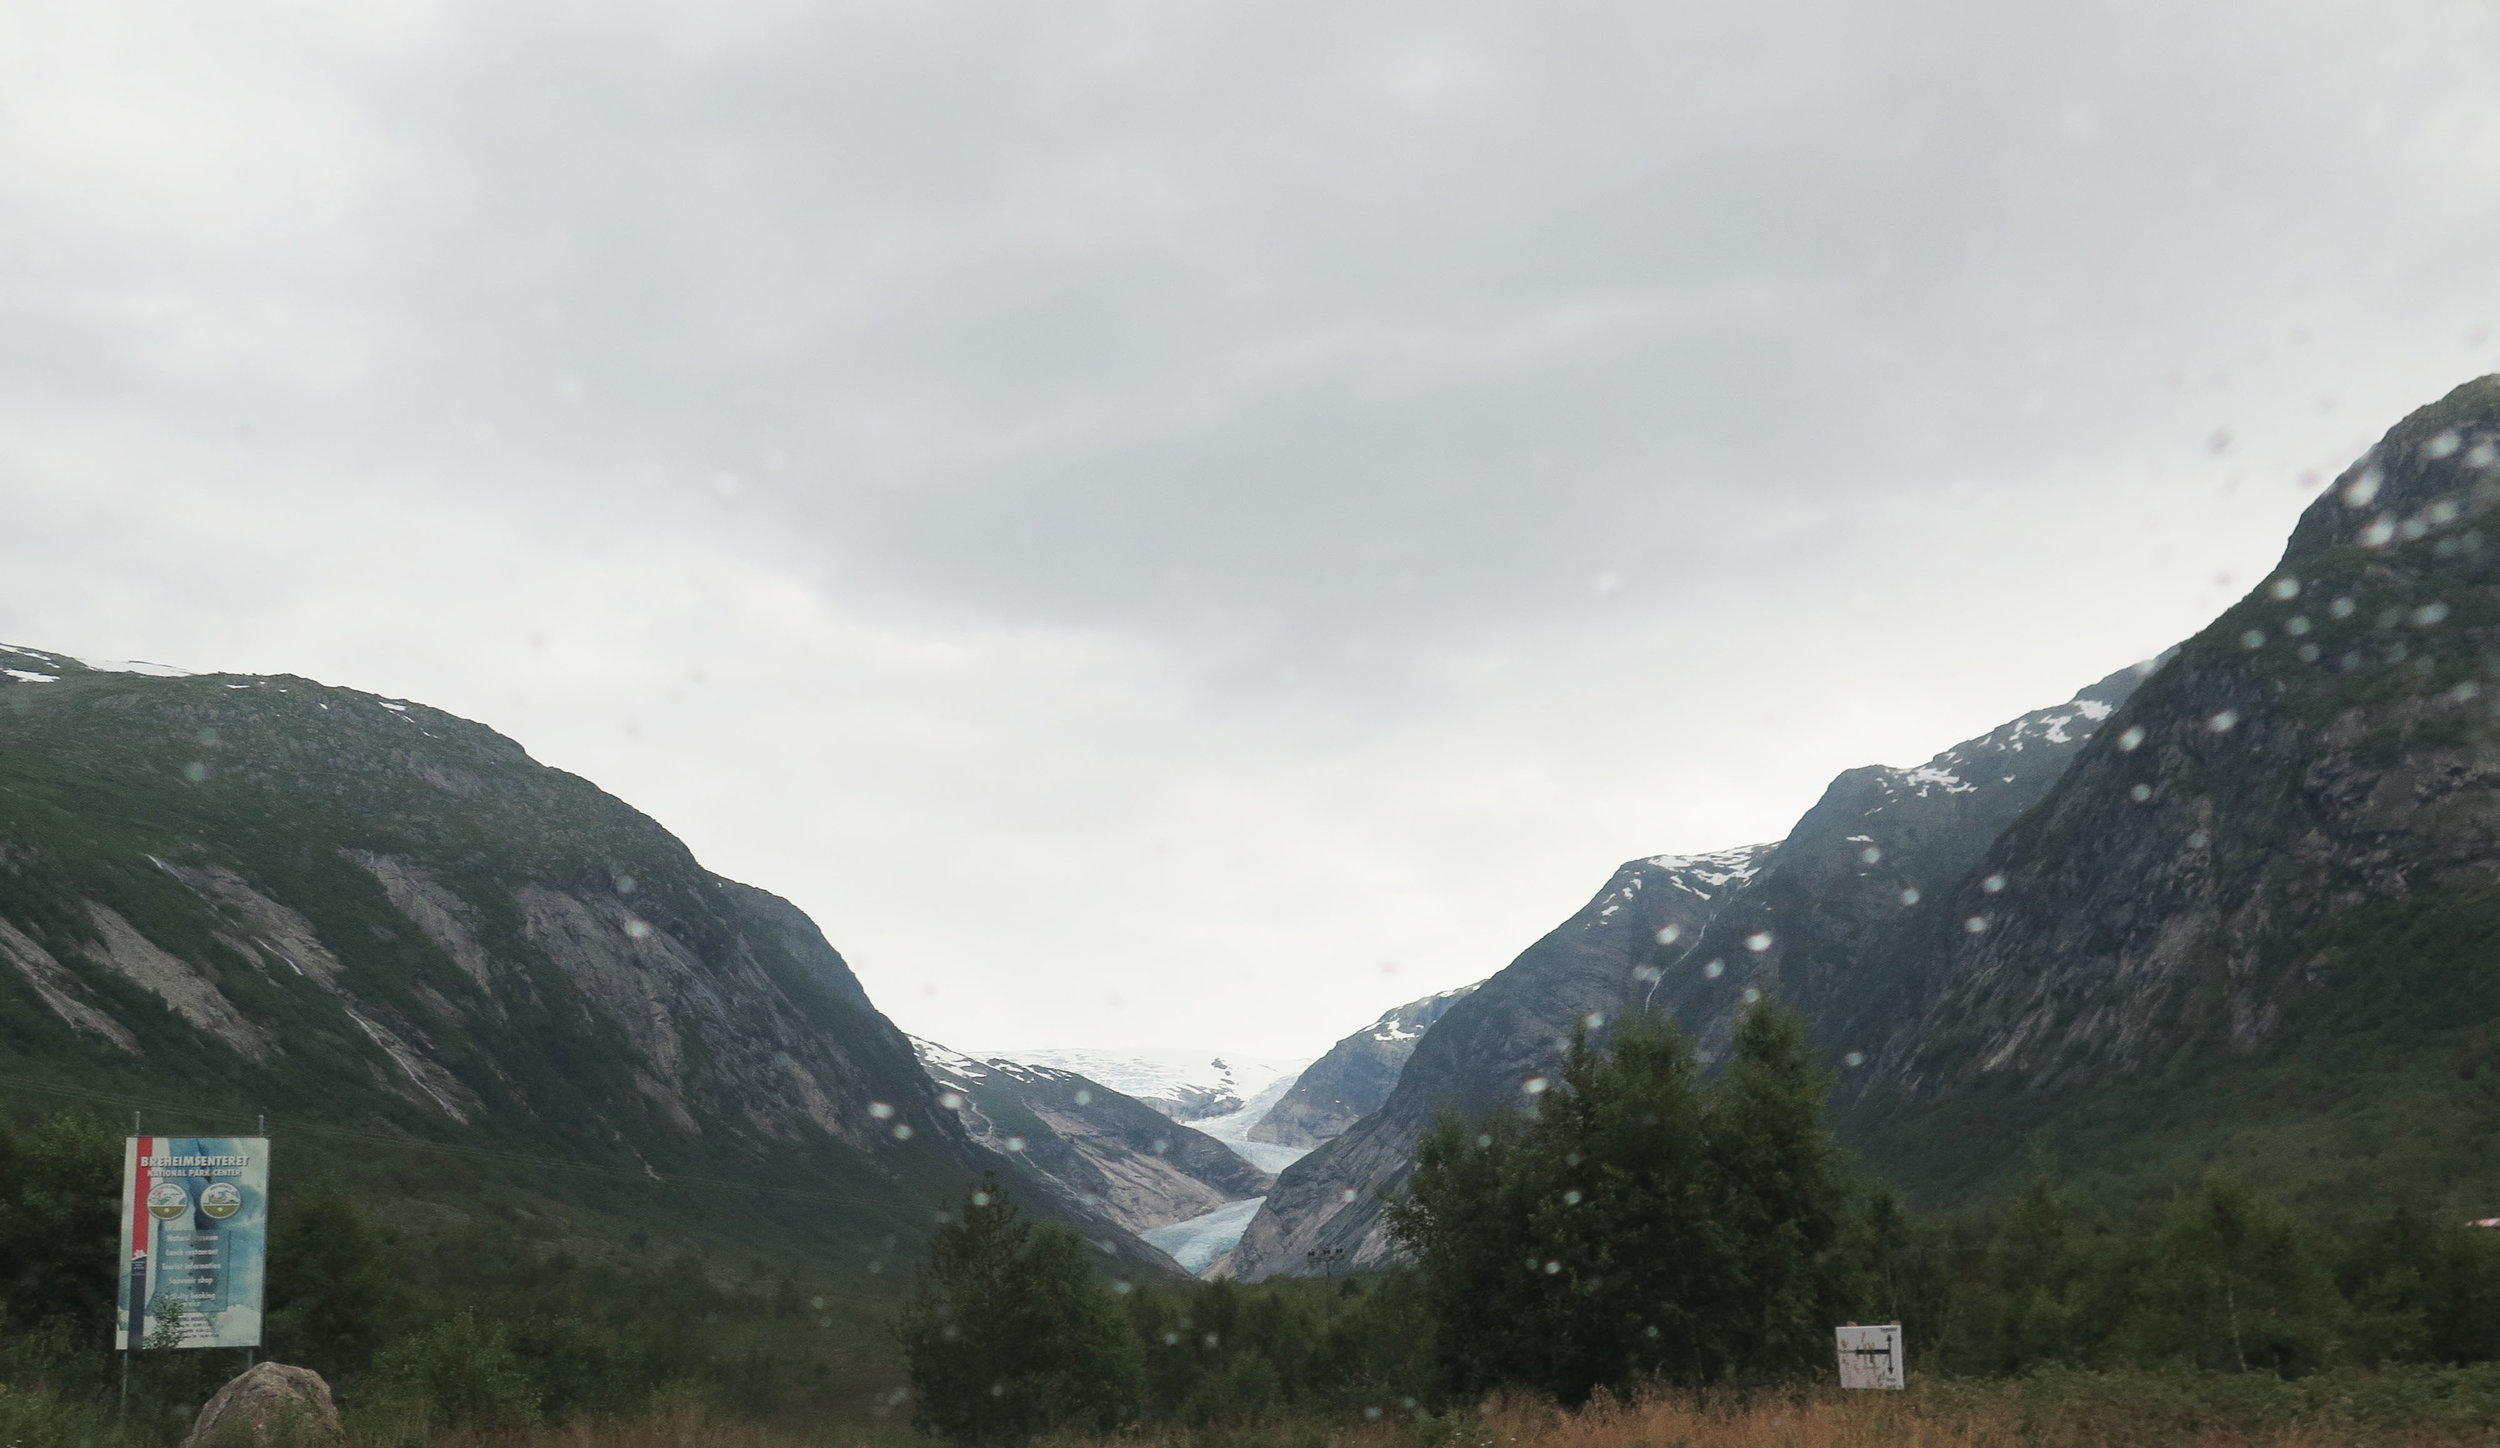 This is the place we first saw the glacier at a distance. Instant stomach drop